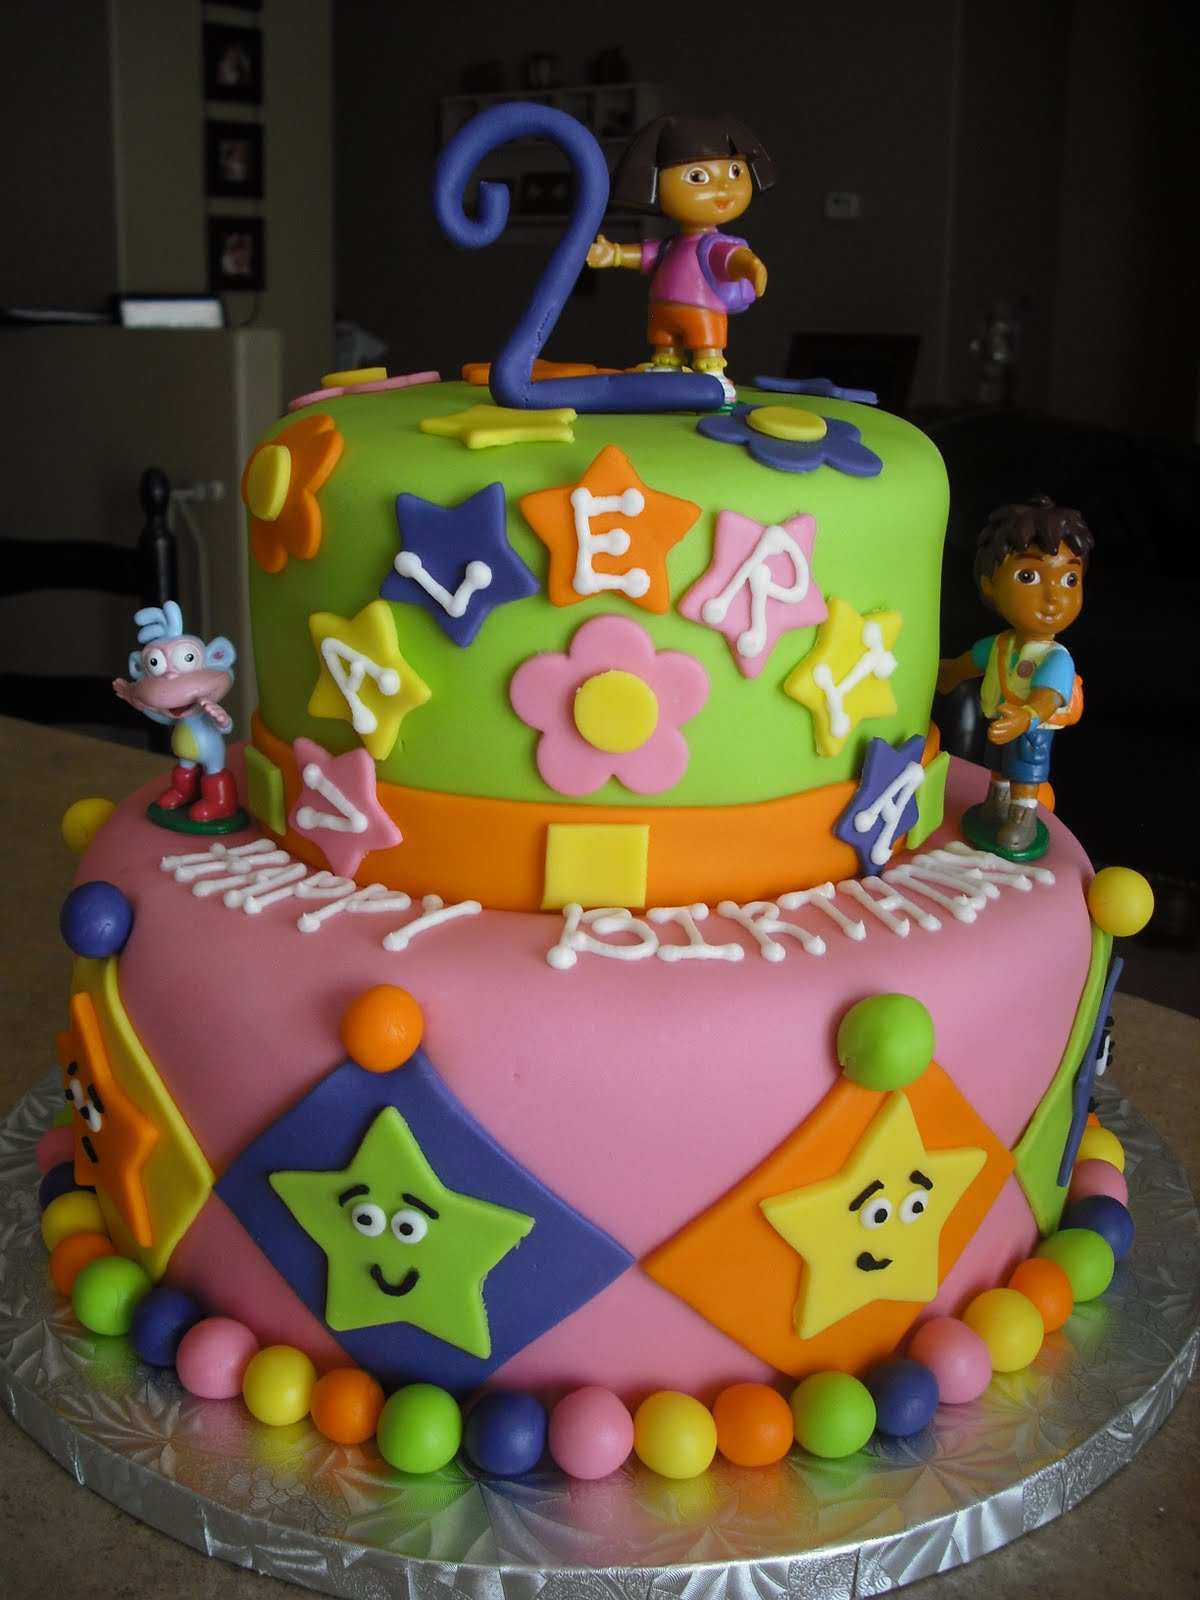 Cake Designs Dora The Explorer : Sprinklebelle: Dora The Explorer Cake